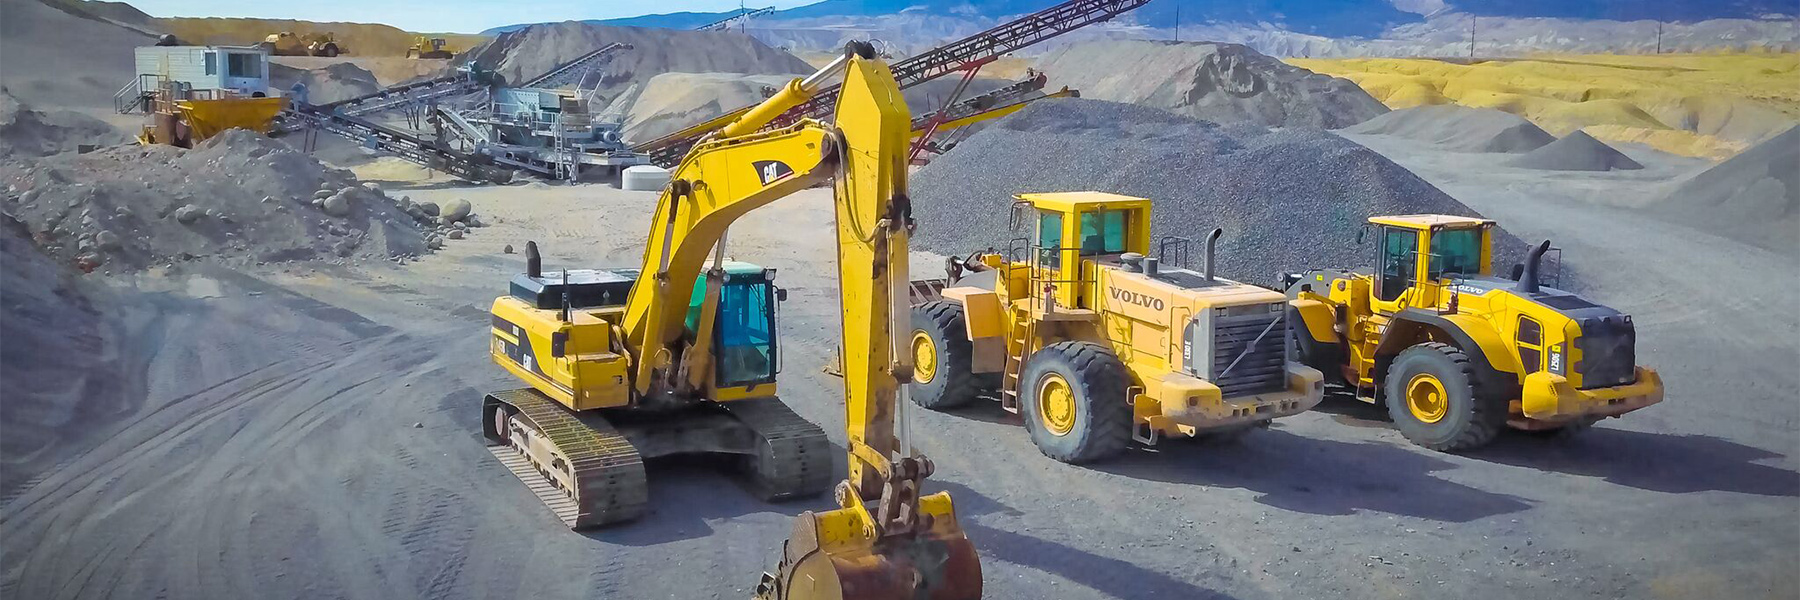 CAT excavator and two Volvo wheel loaders in gravel pit